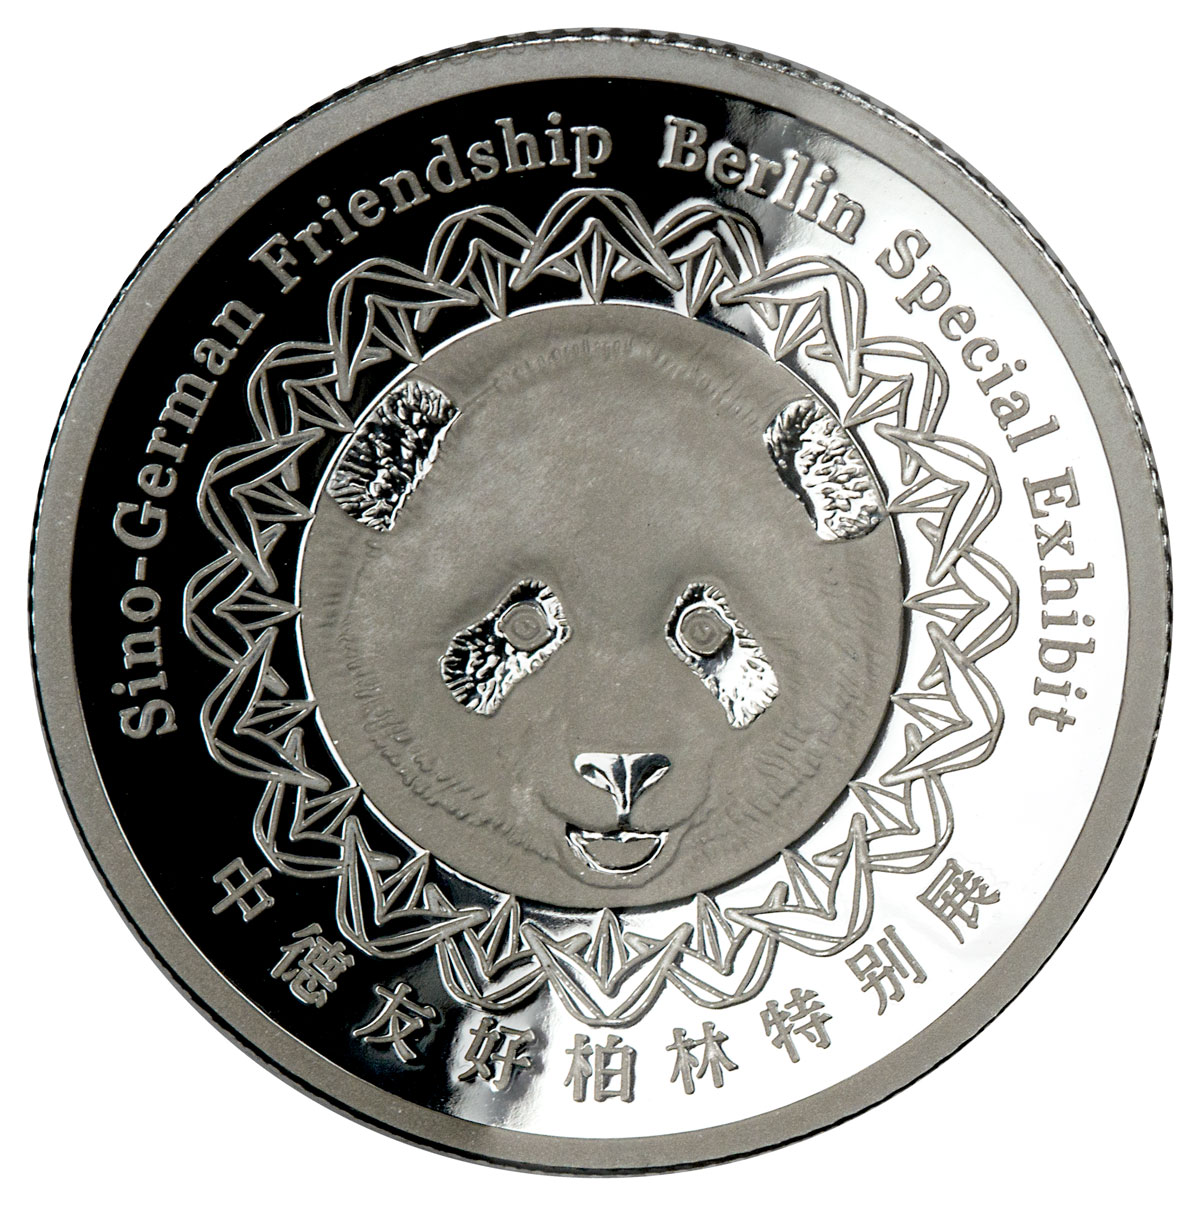 2017-(S) China Berlin World Money Fair 16 g Silver Show Panda Piedfort Proof Medal GEM Proof Original Mint Capsule